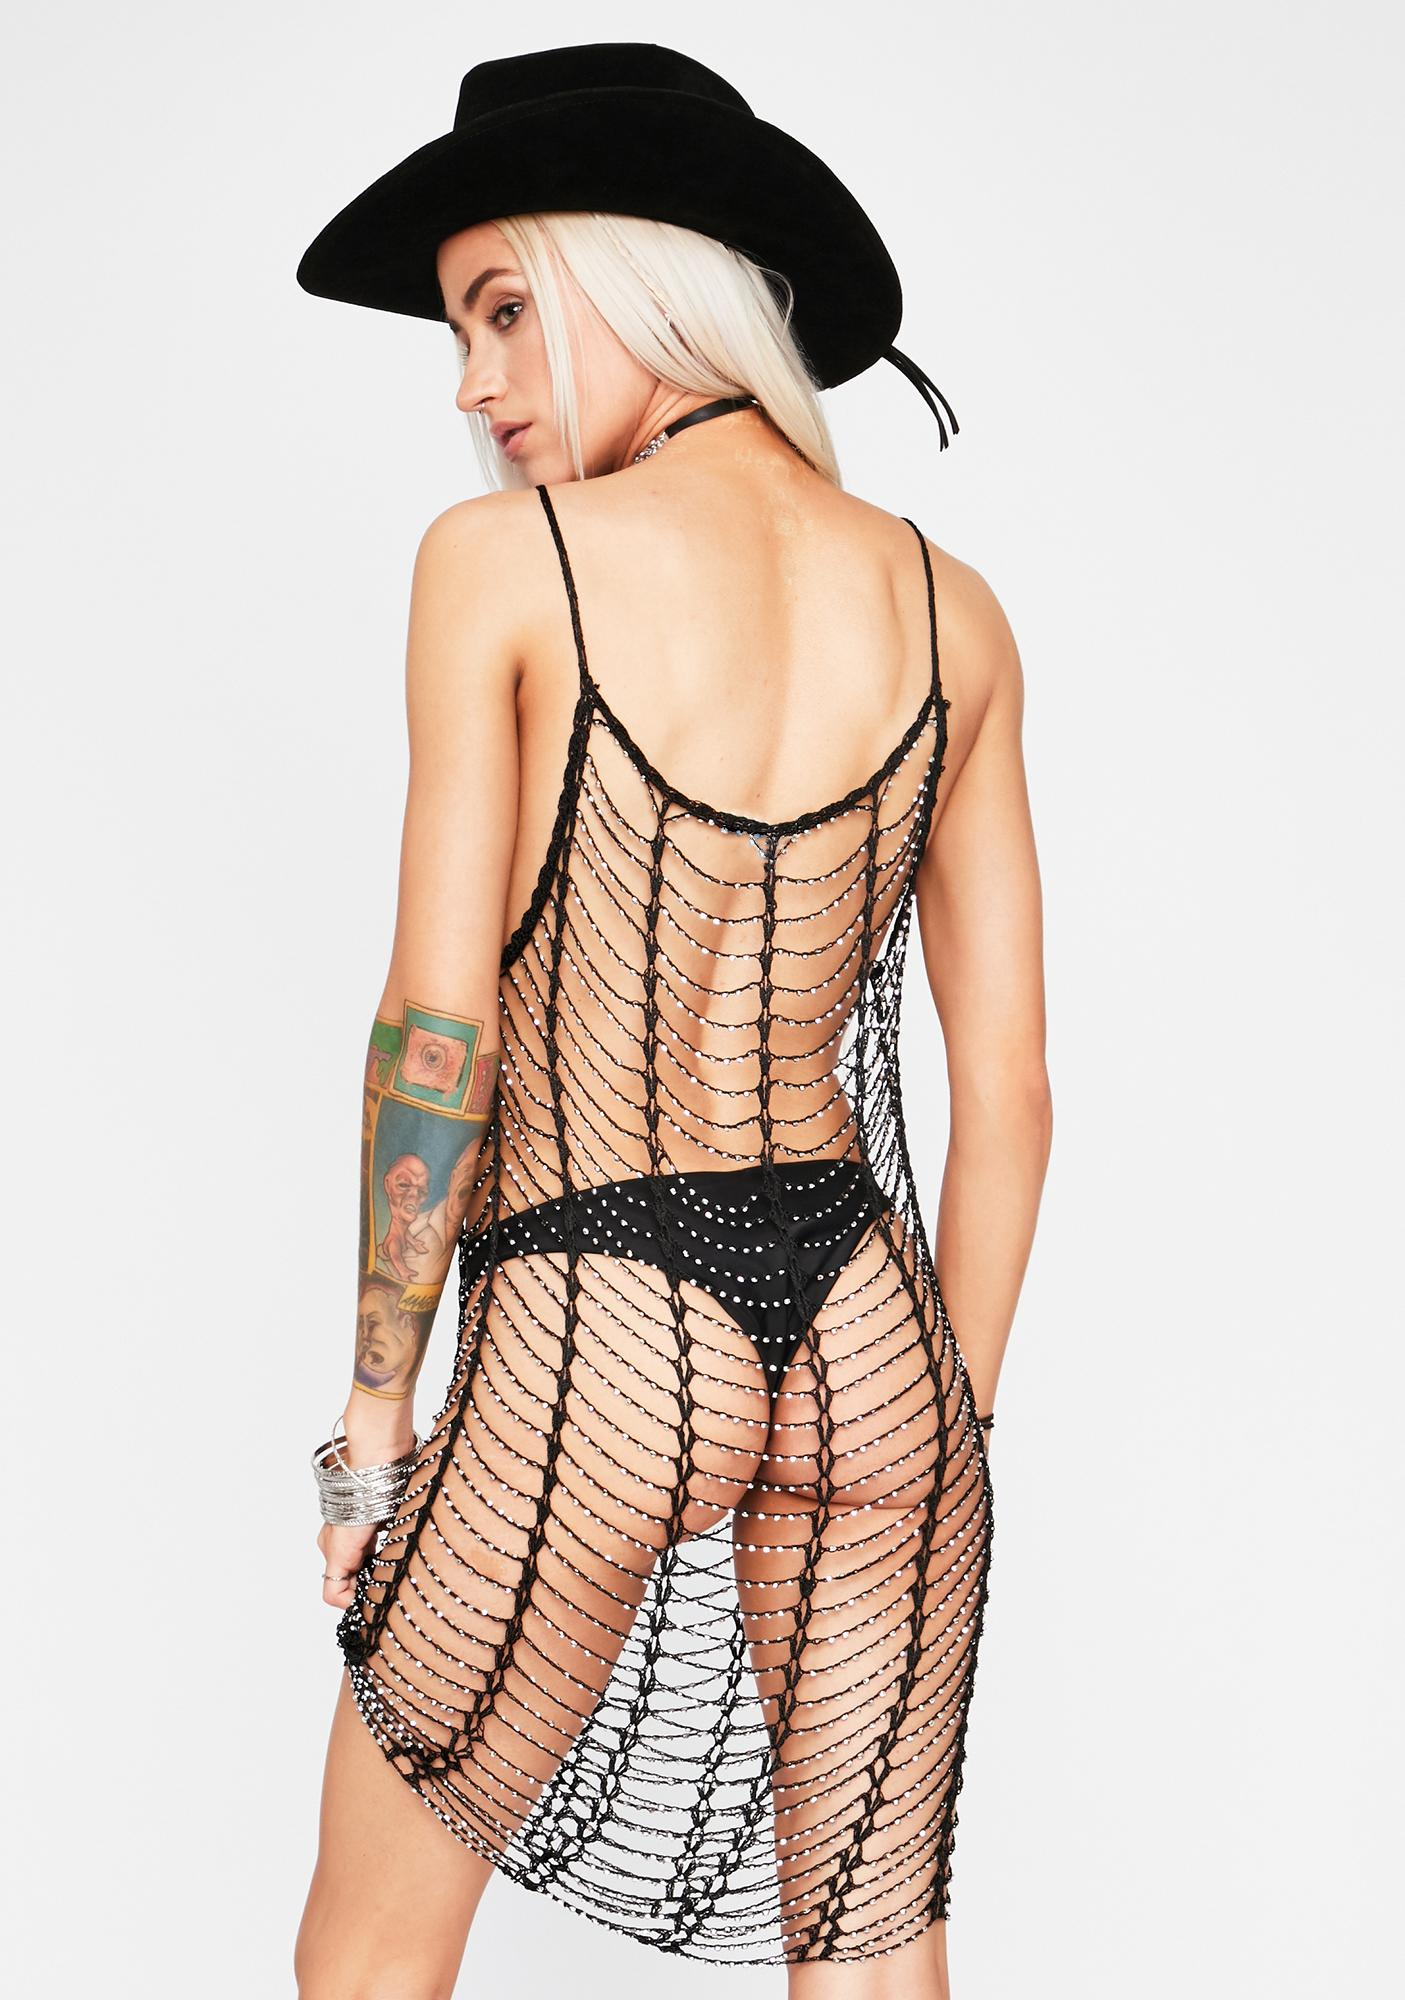 Sahara Siren Crochet Net Dress